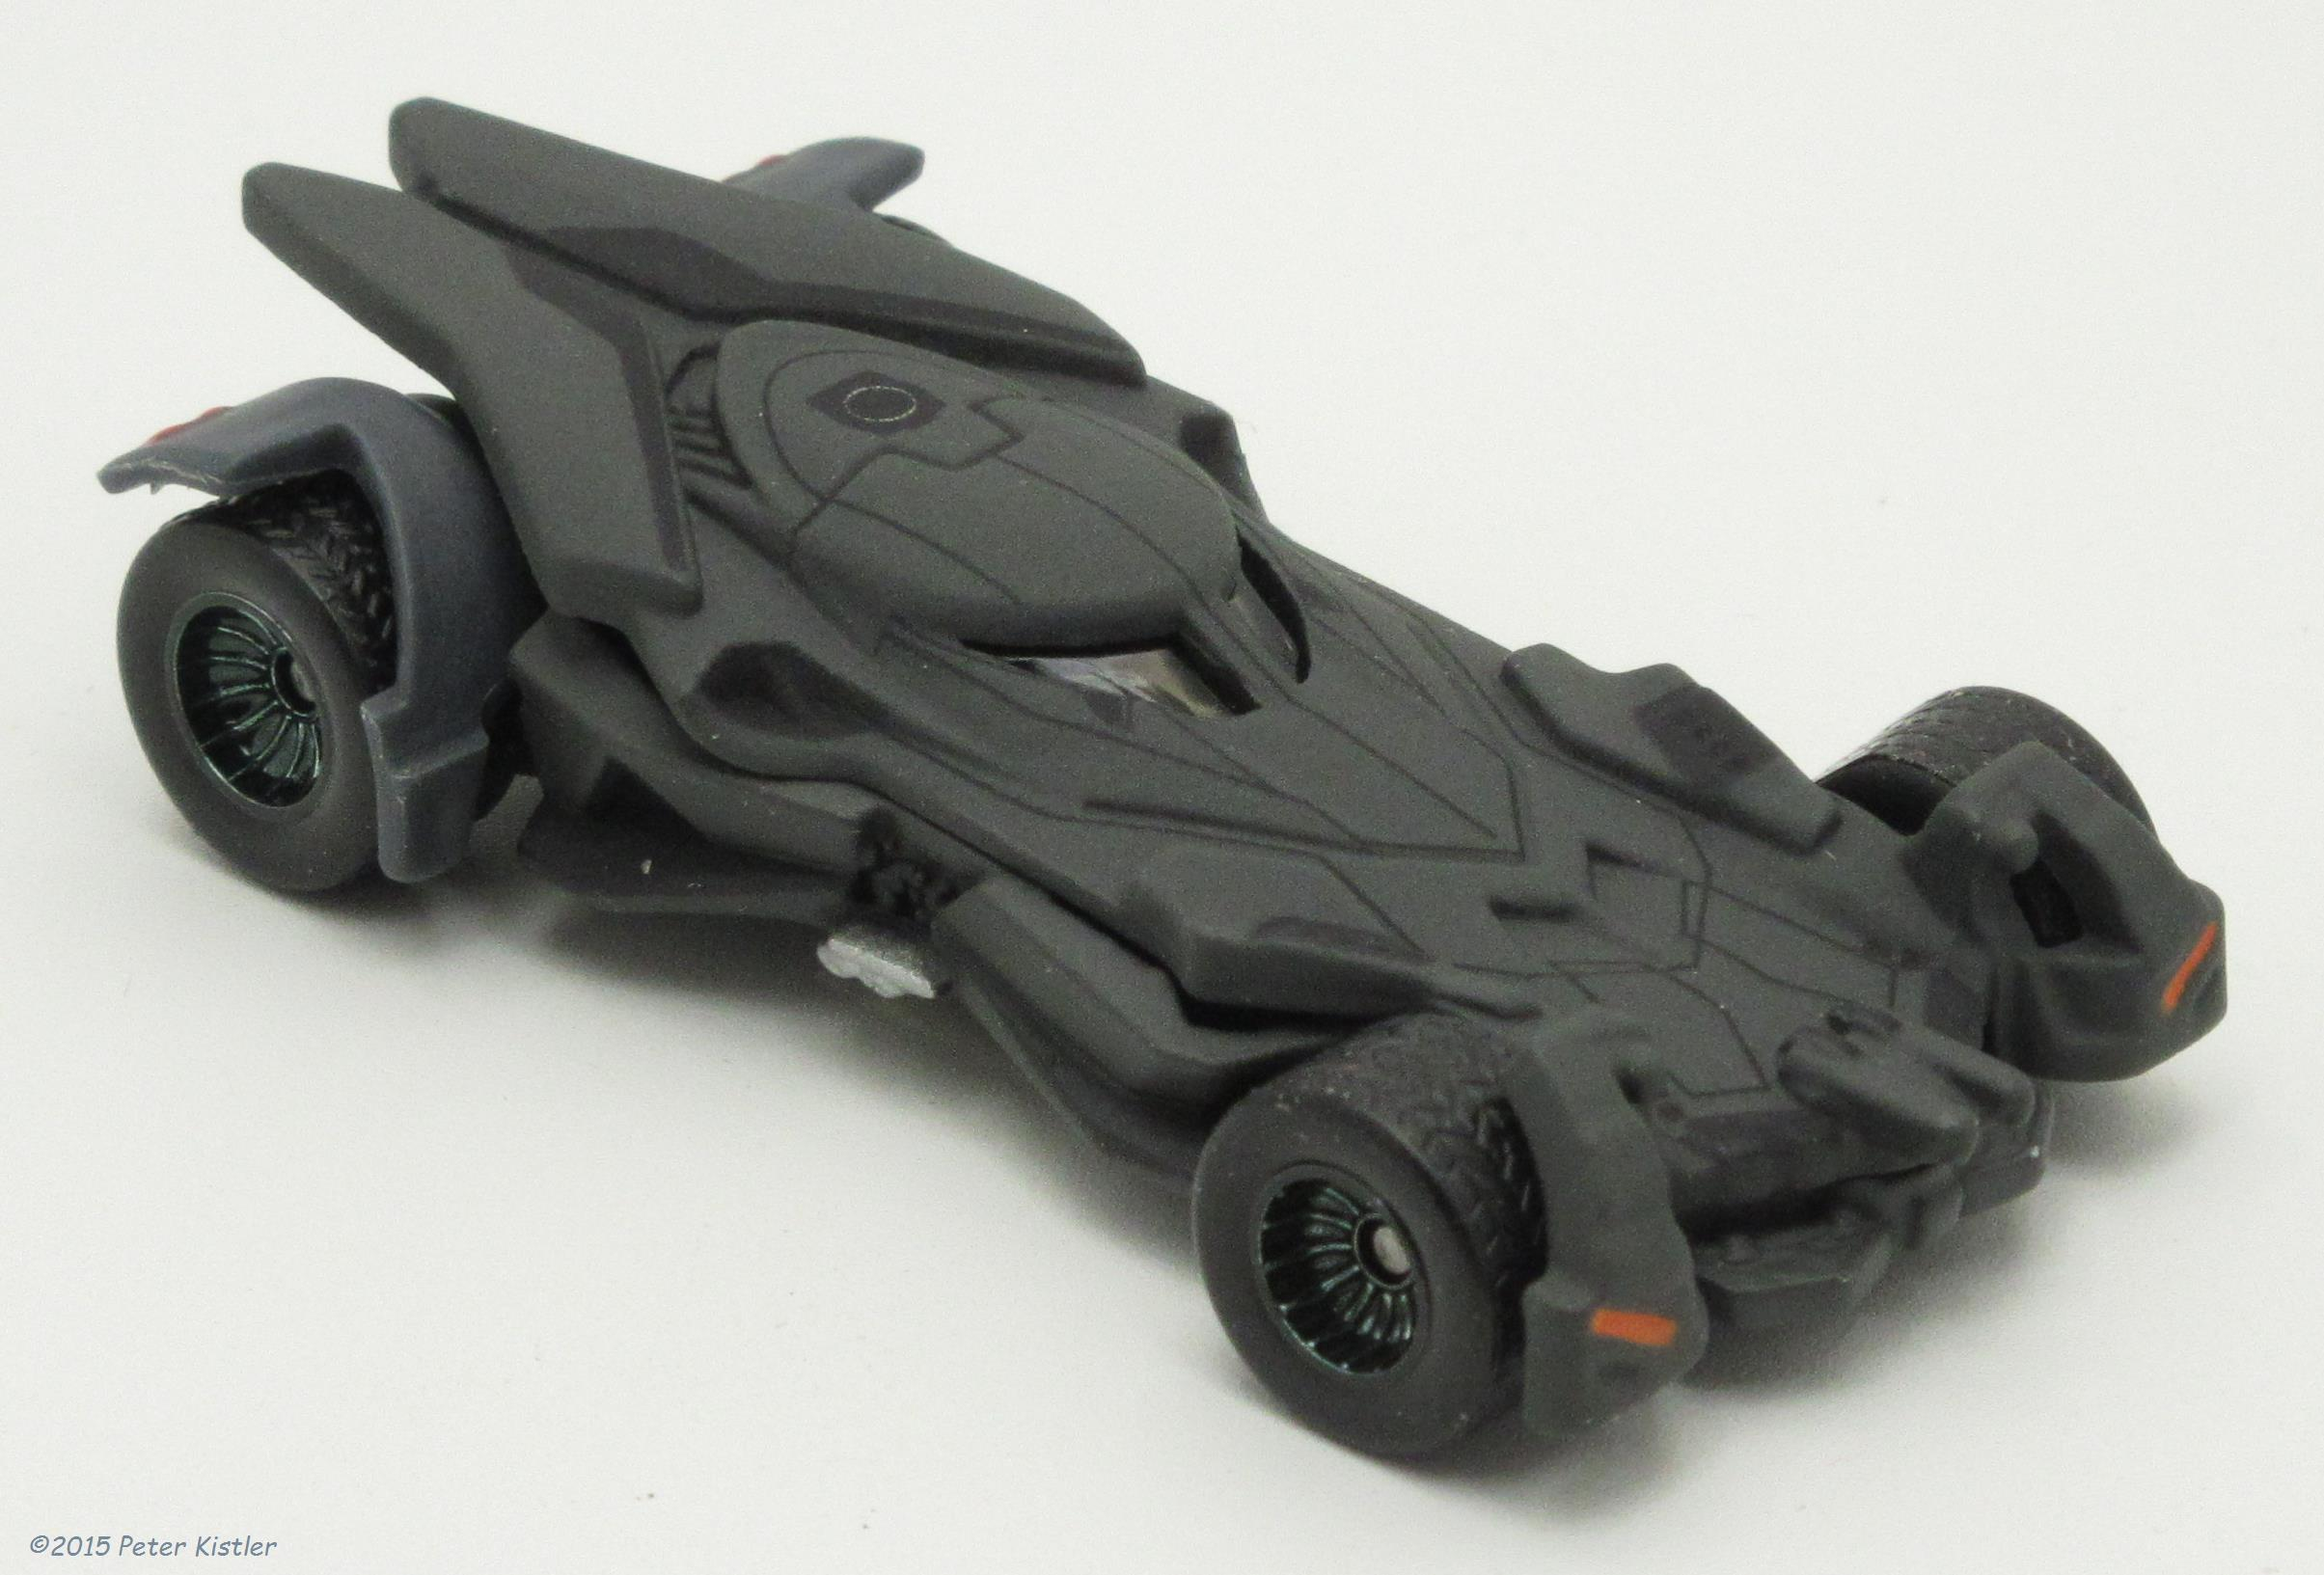 Batmobile (Batman v Superman)